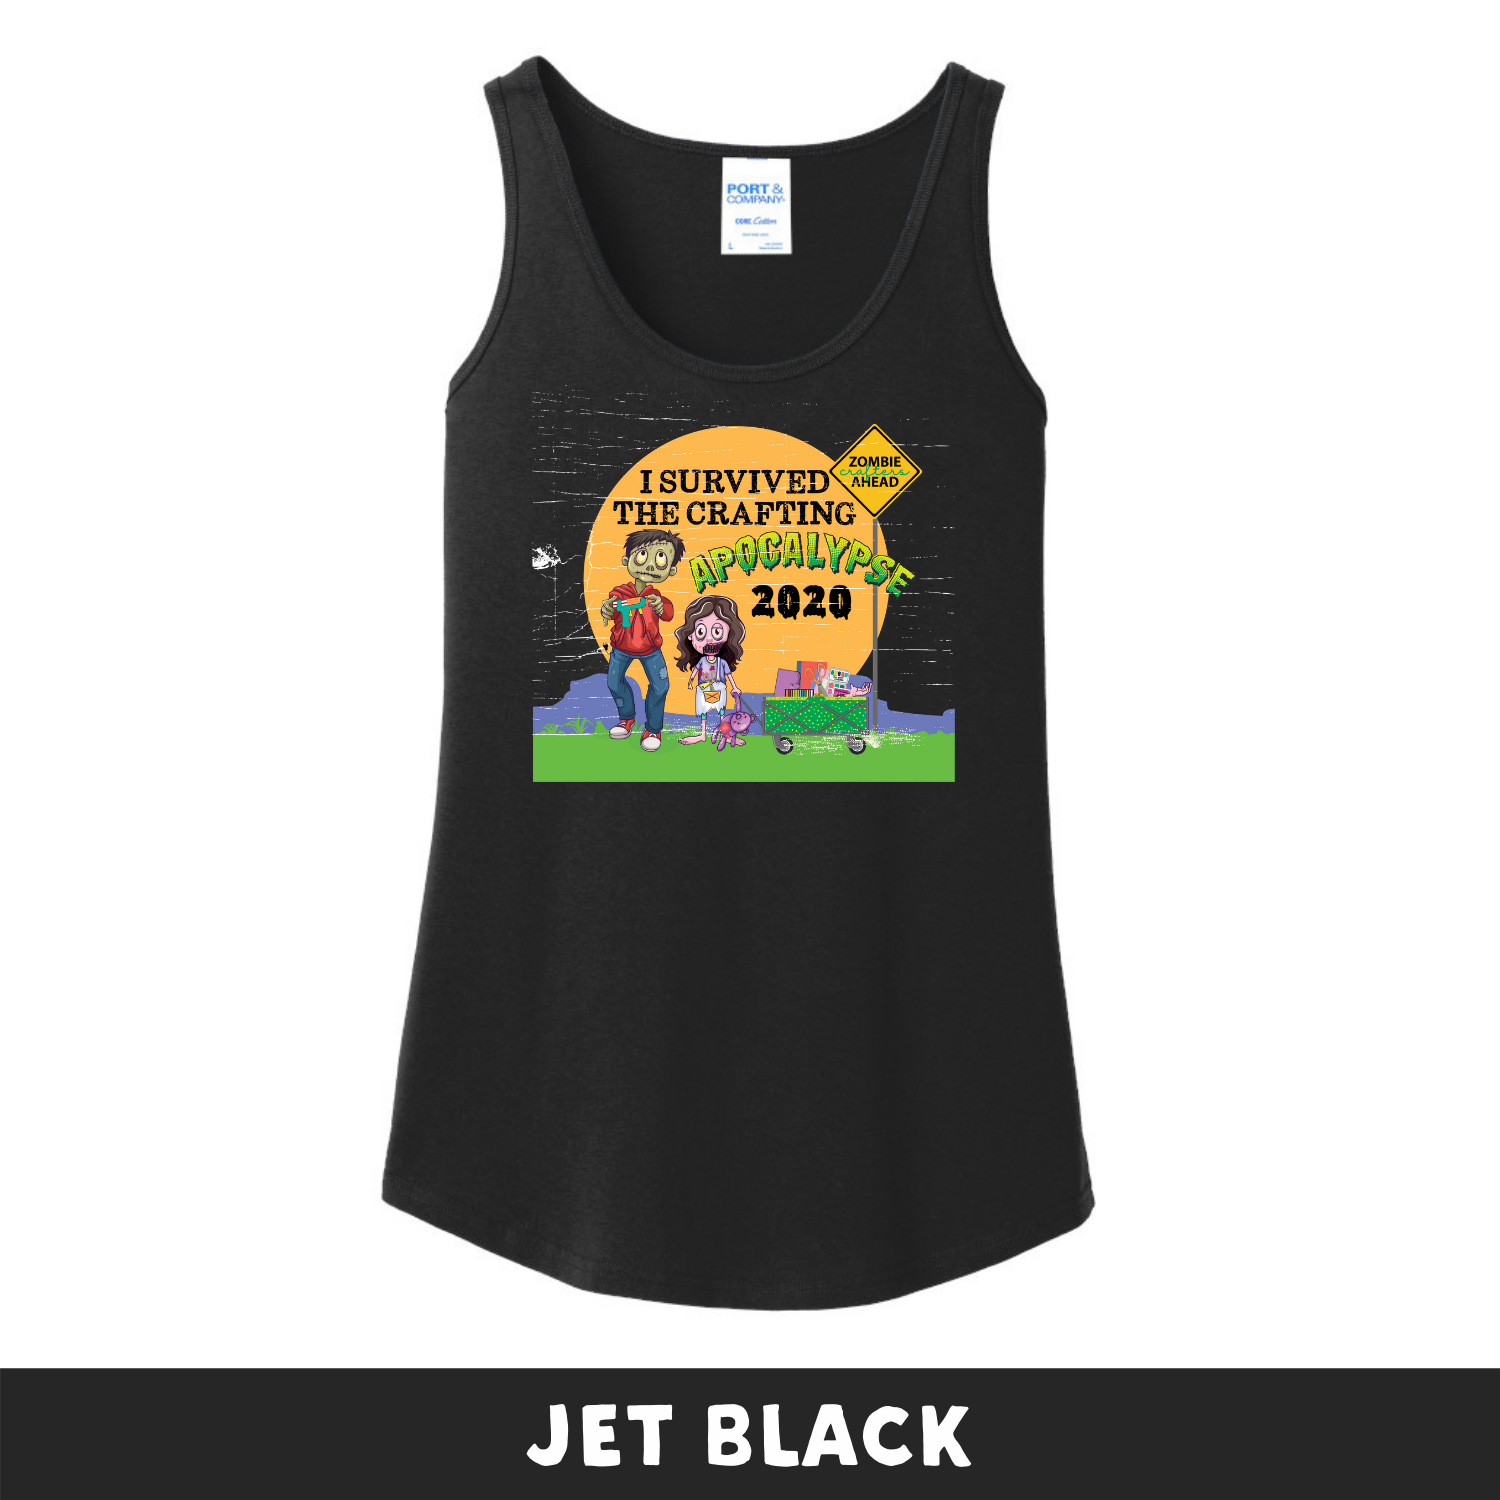 Jet Black -  Woman's Cut Tank Top - I Survived The 2020 Crafting Apocalypse